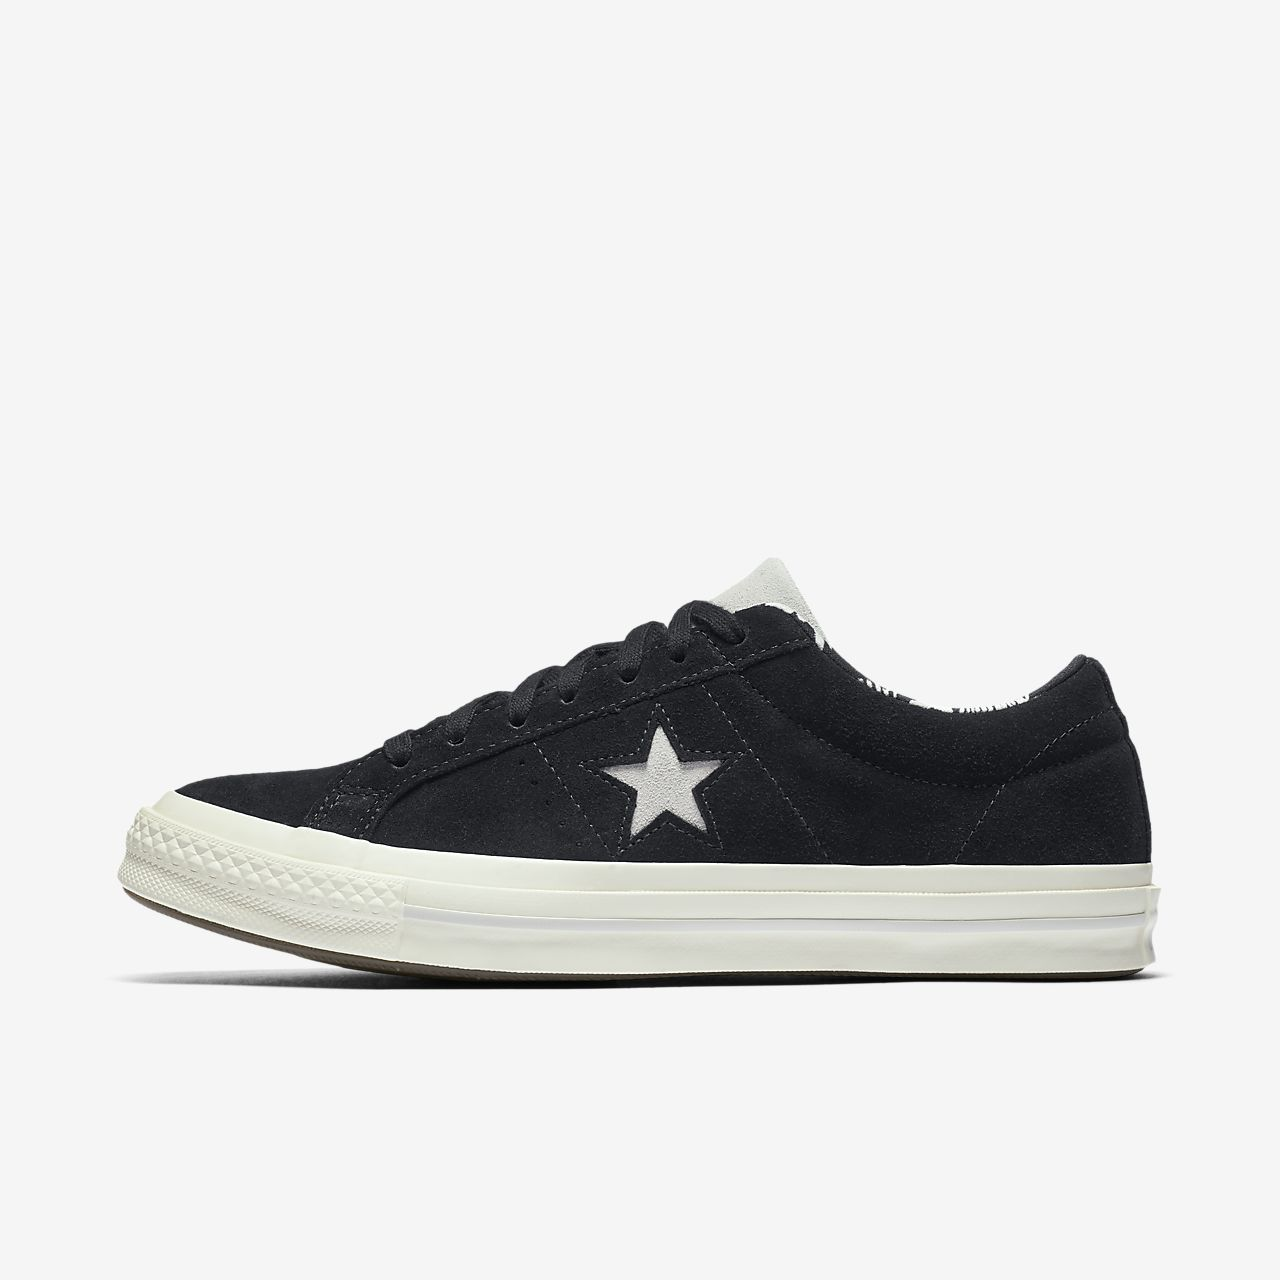 Converse One Star Tropical Feet Low Top Unisex Shoe